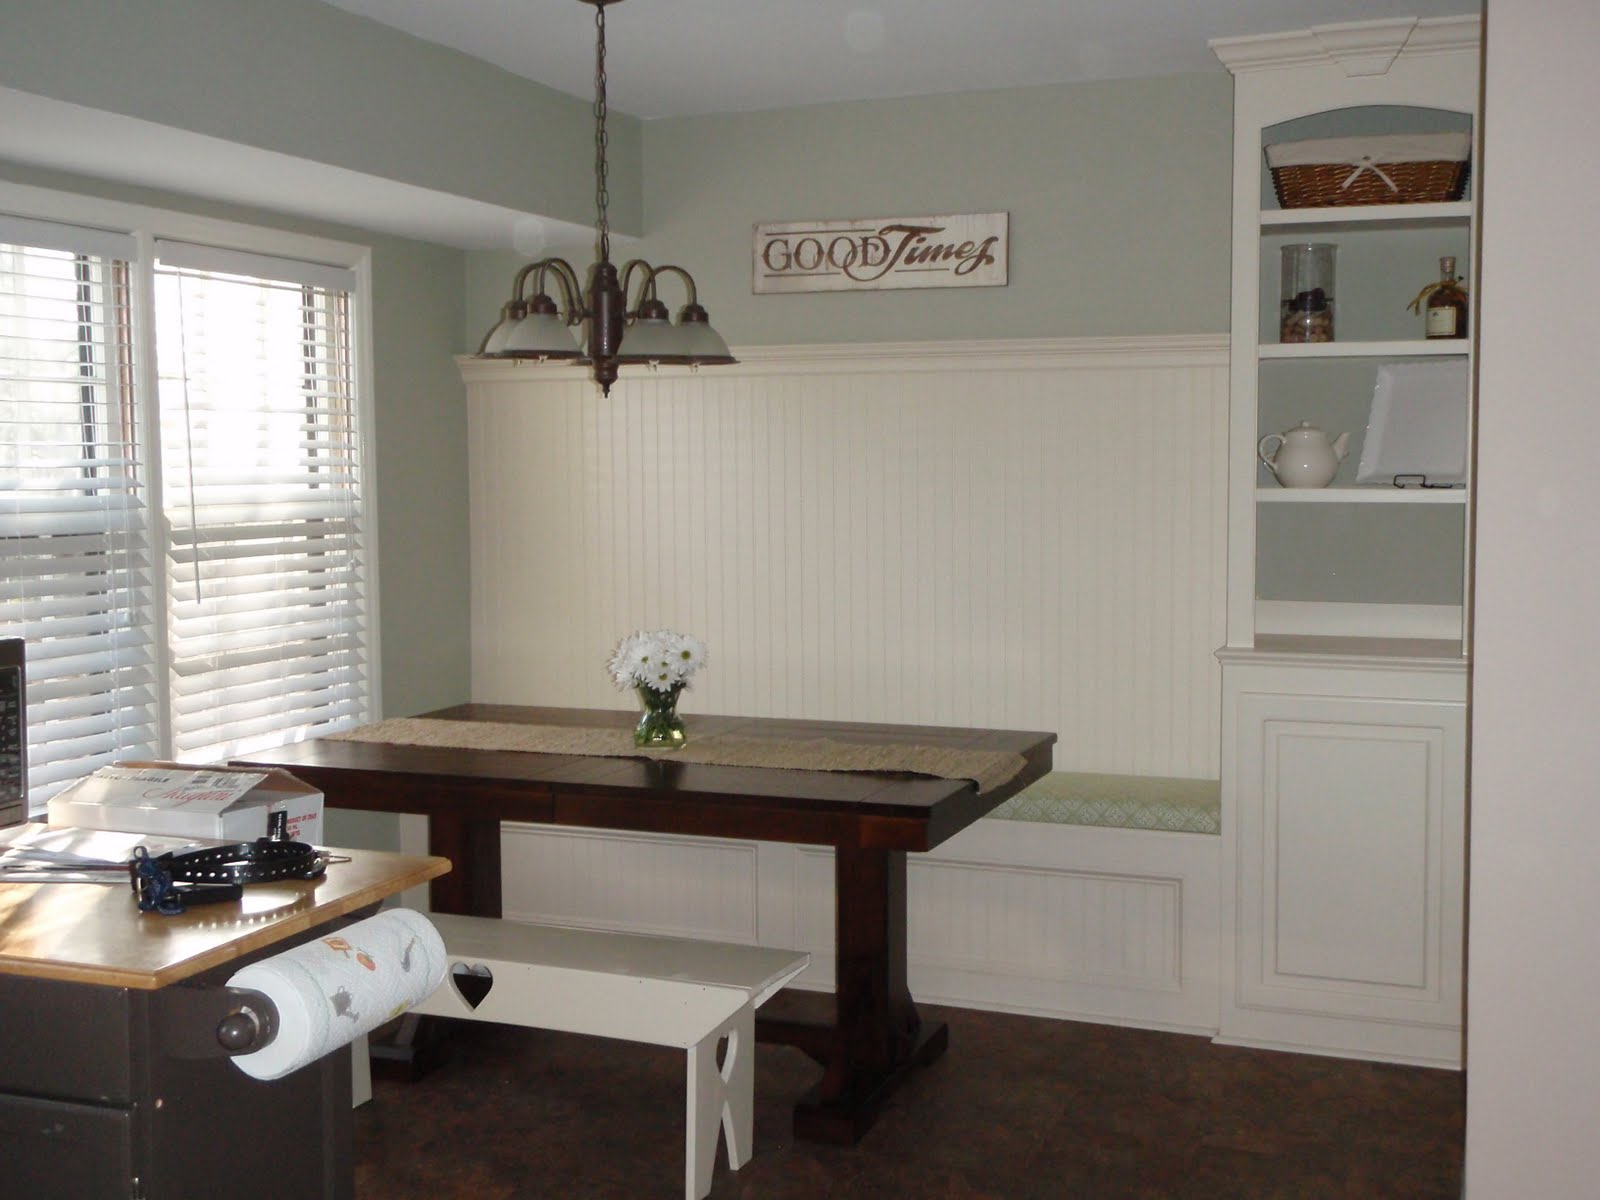 Banquette Bench With Built In Shelf, Featured On Remodelaholic